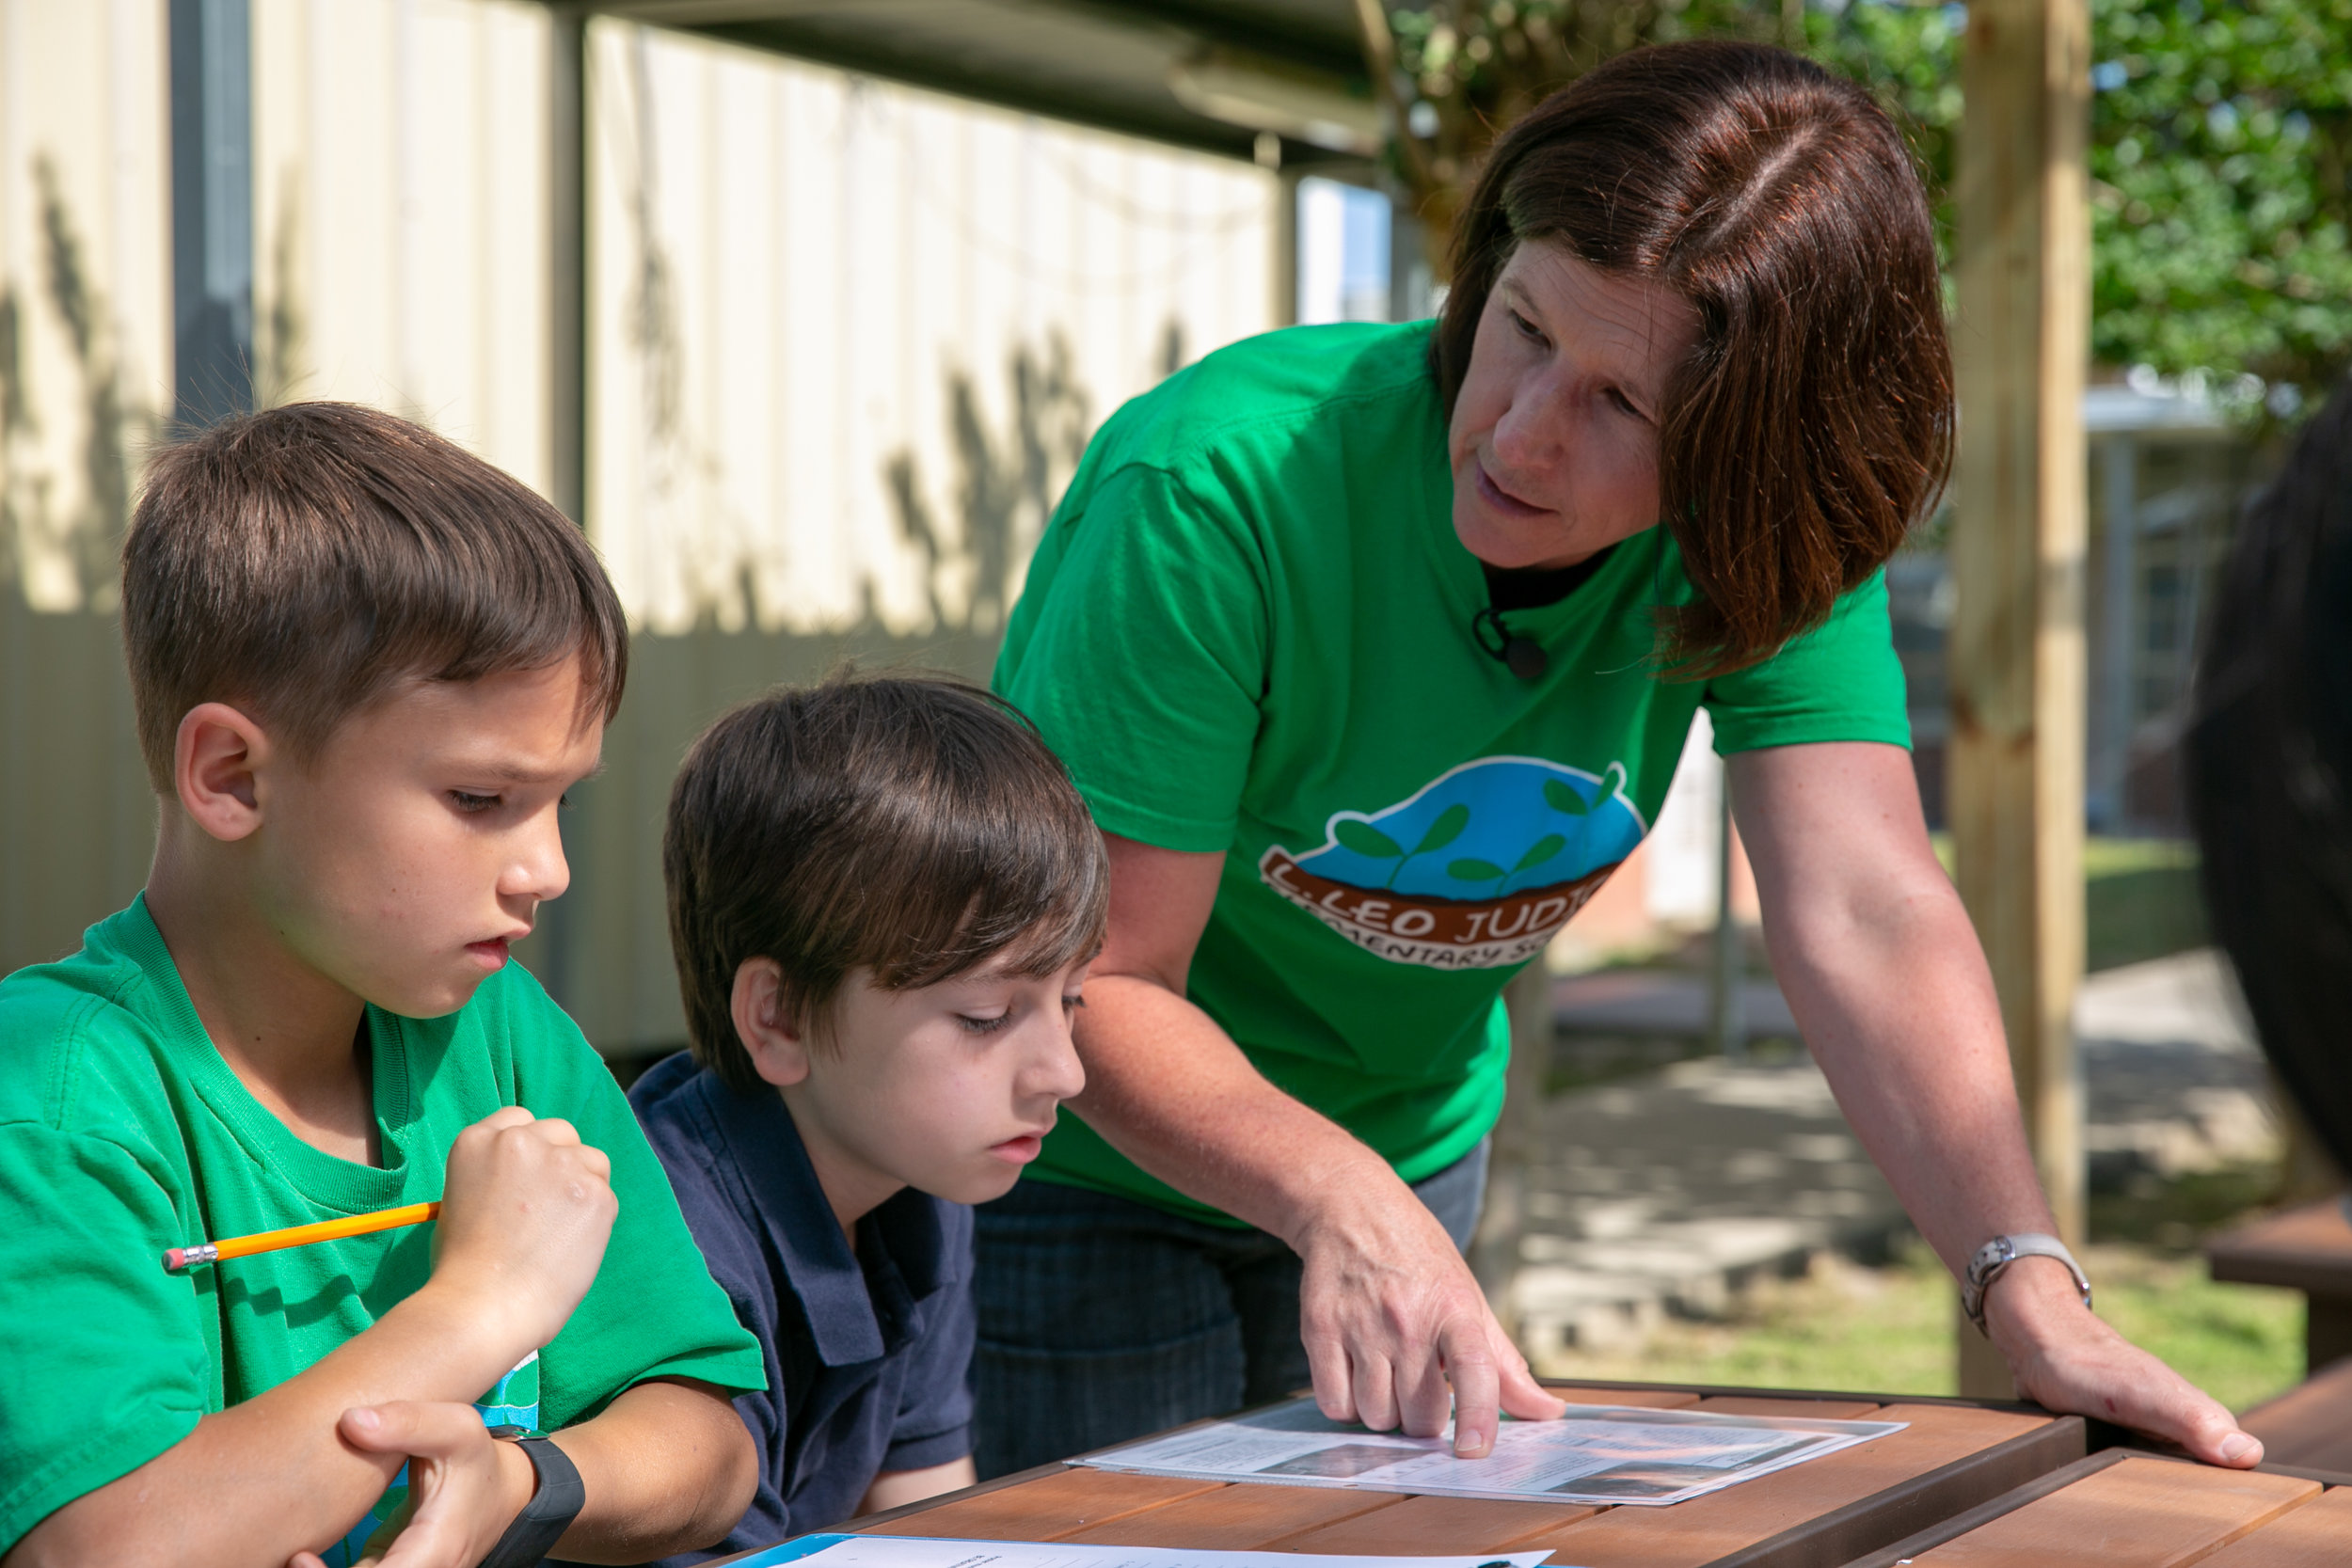 In a special outdoor classroom, Guidry helps her students research garden pests and how to identify them. Photo by Monica Velasquez